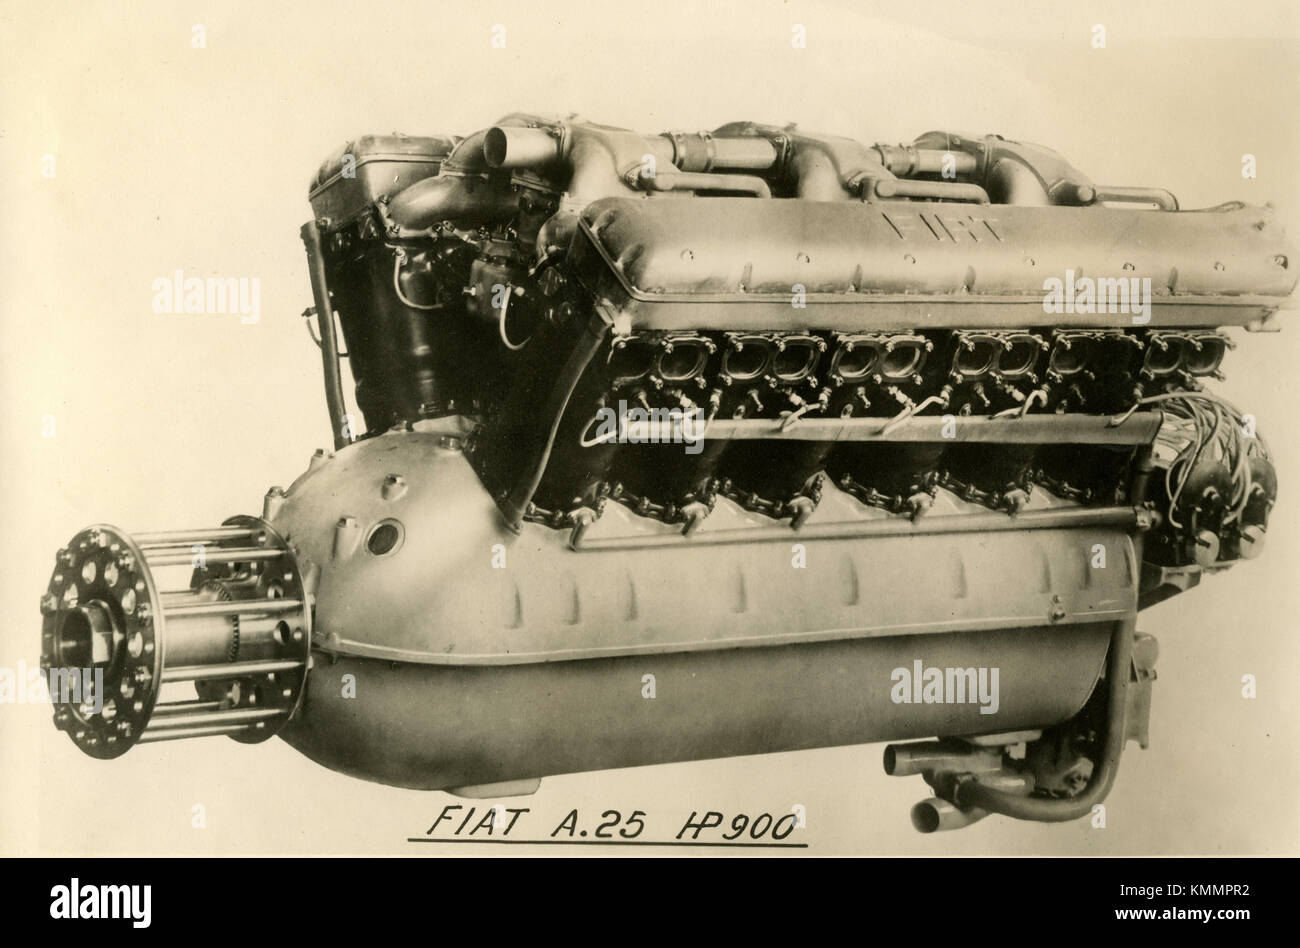 FIAT aviation engine A.25 HP 900, Italy 1920s - Stock Image